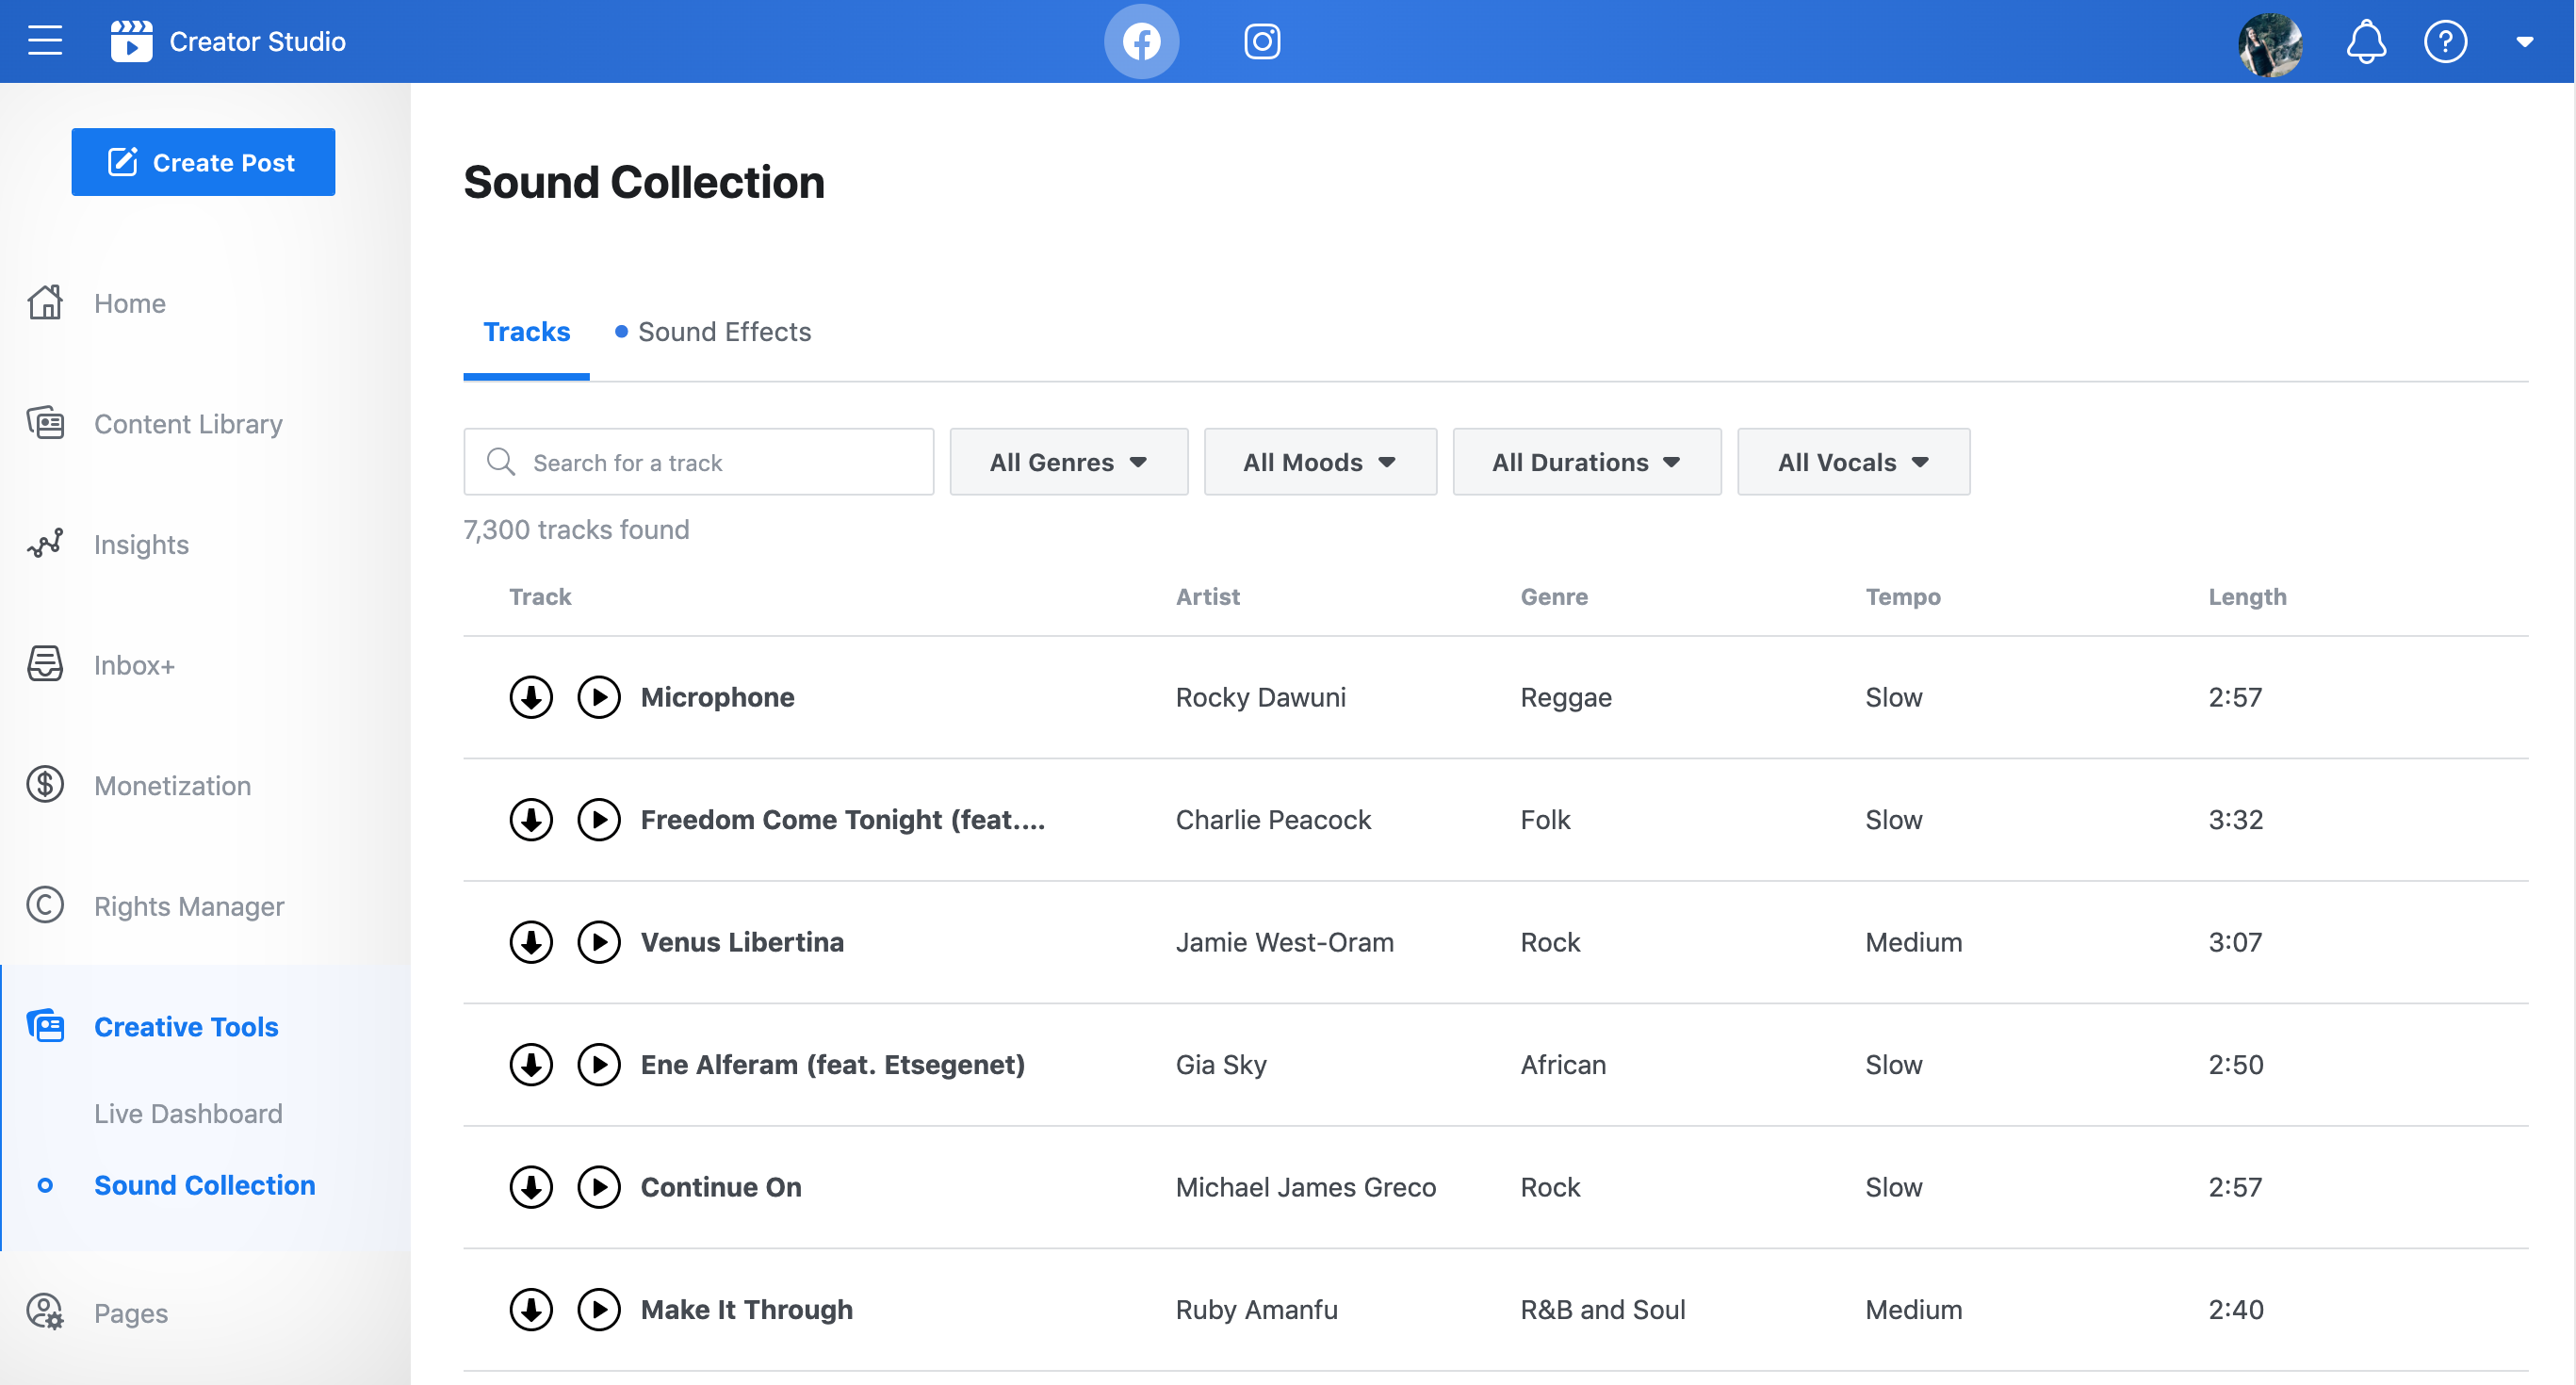 Screenshot of the royalty-free music collection within Facebook Creator Studio.